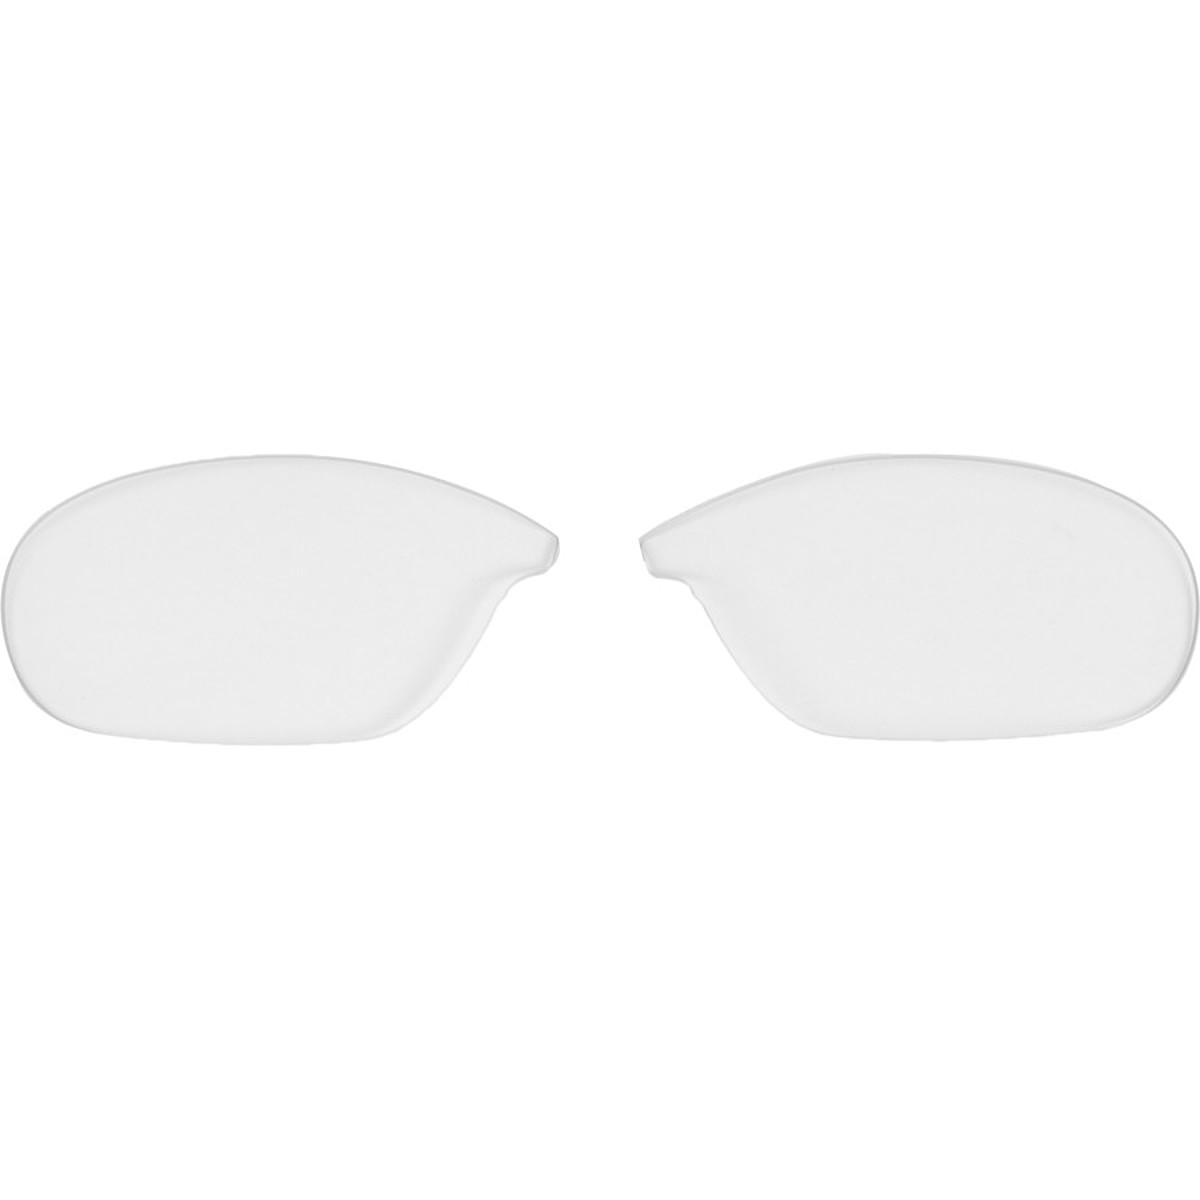 Native Eyewear Throttle Lens Kit